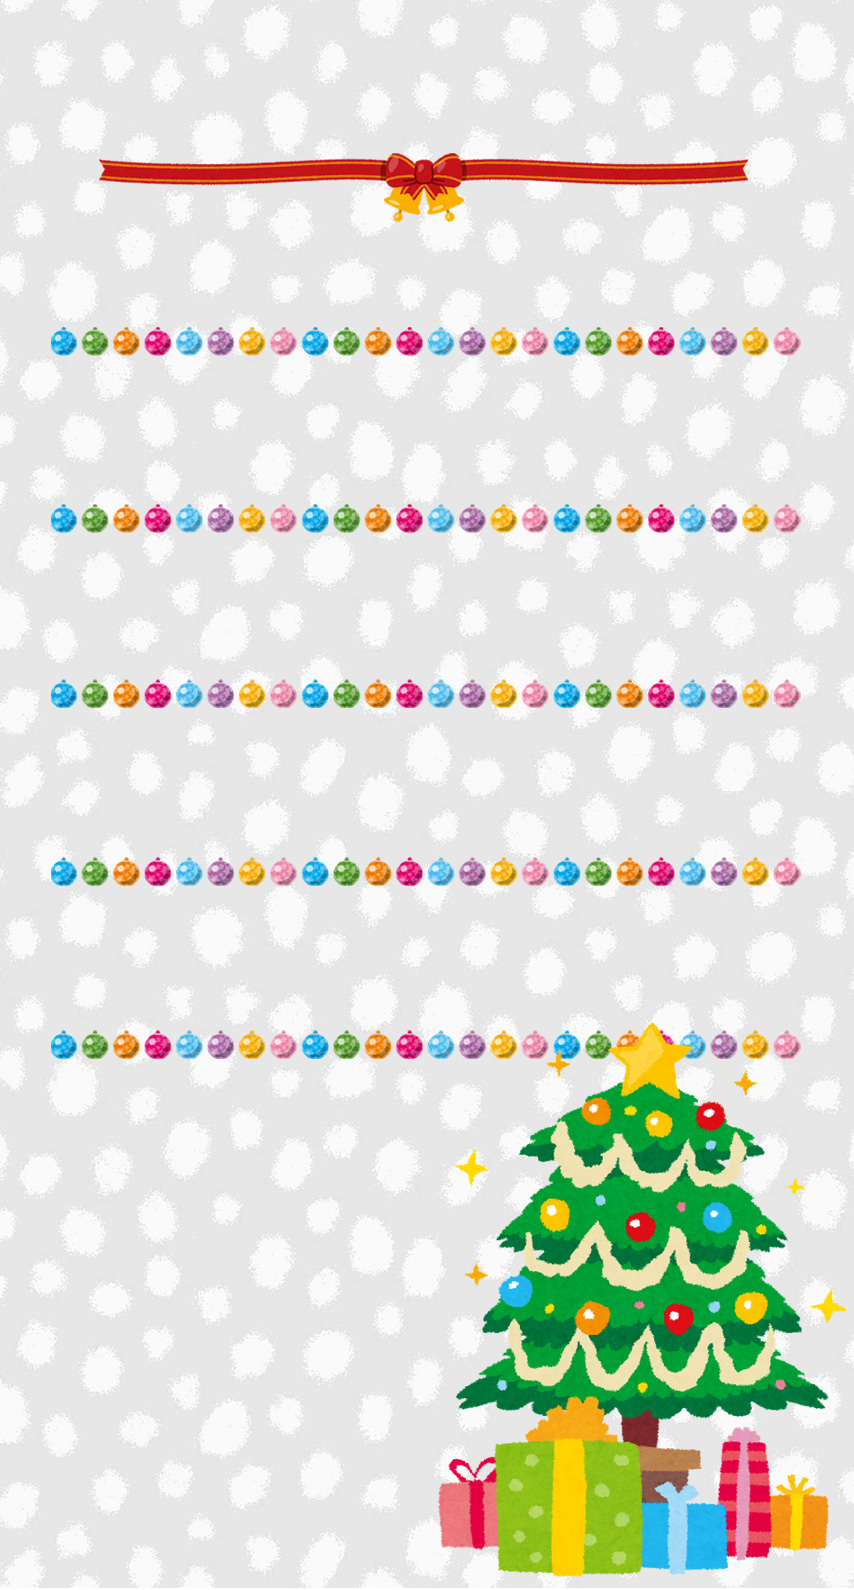 Shelf Christmas tree colorful silver | wallpaper.sc iPhone8